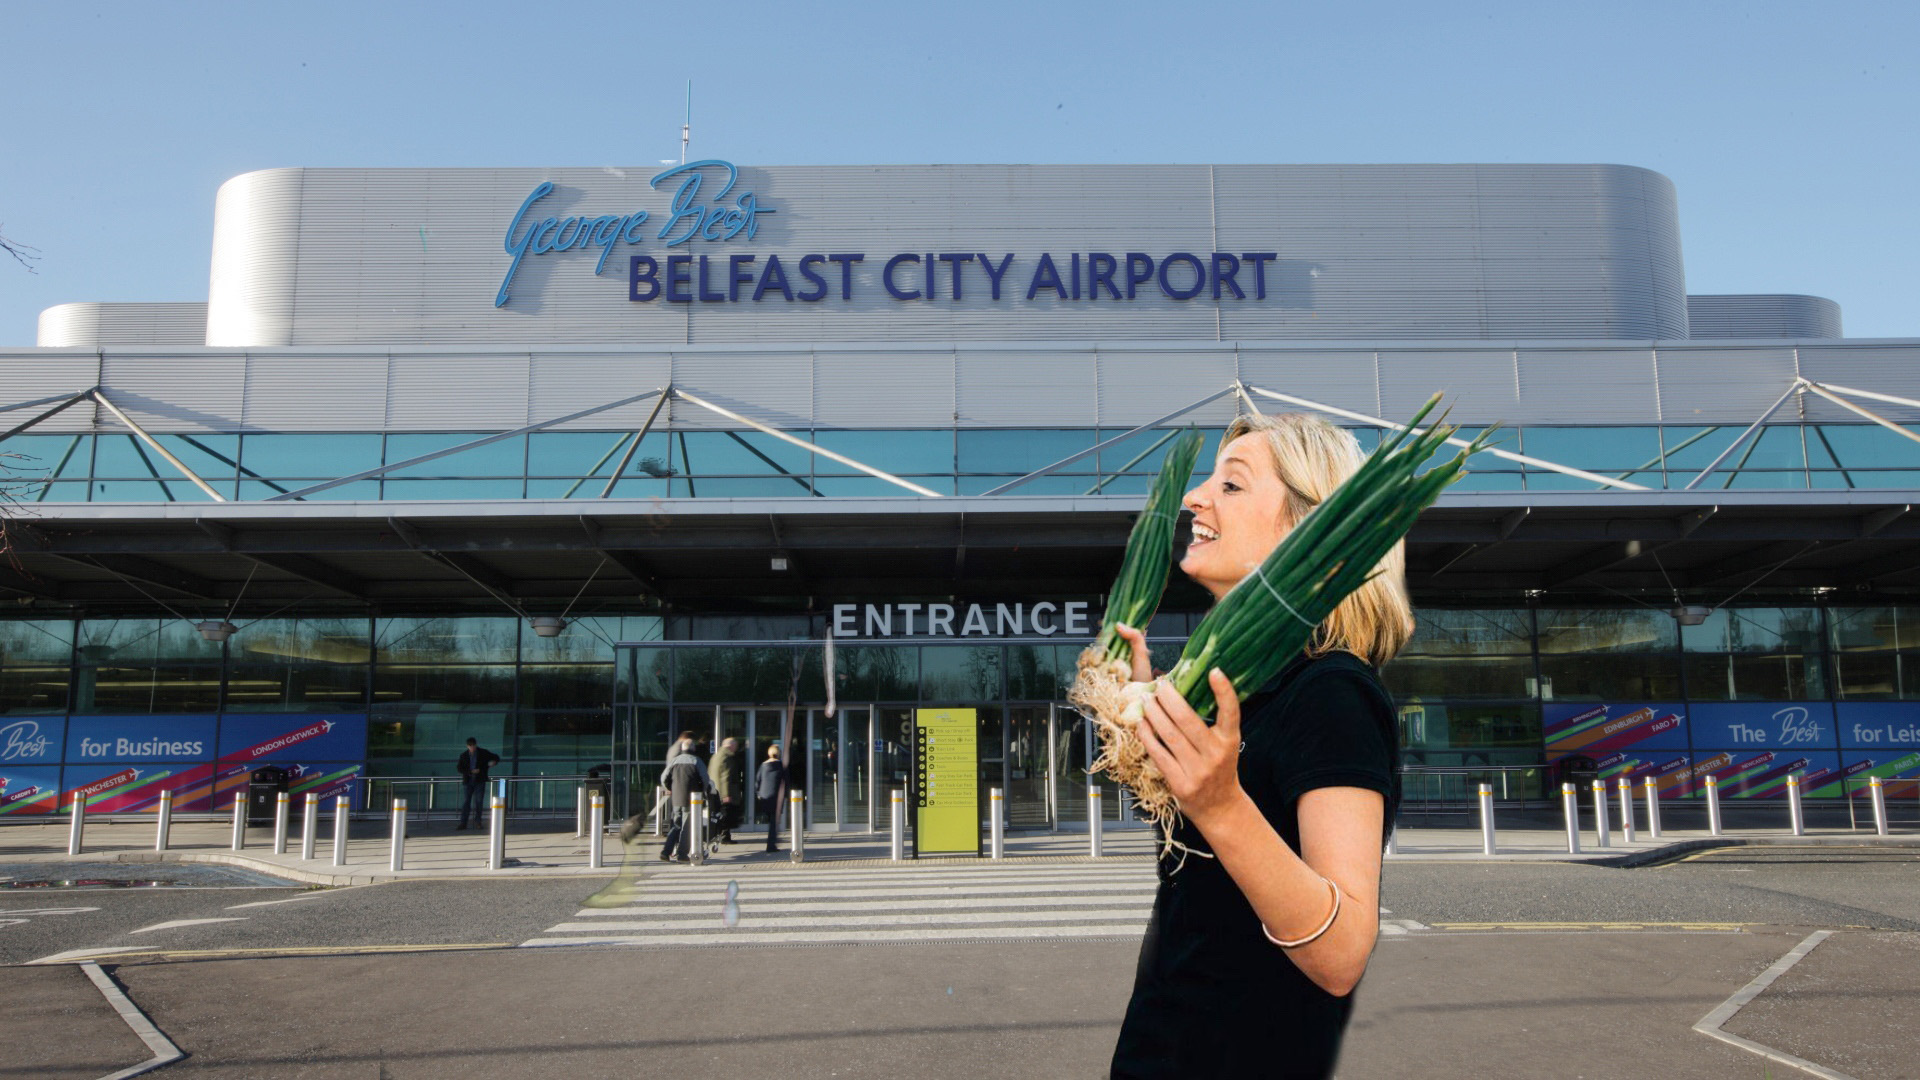 Welcome to Belfast, you Scallions.